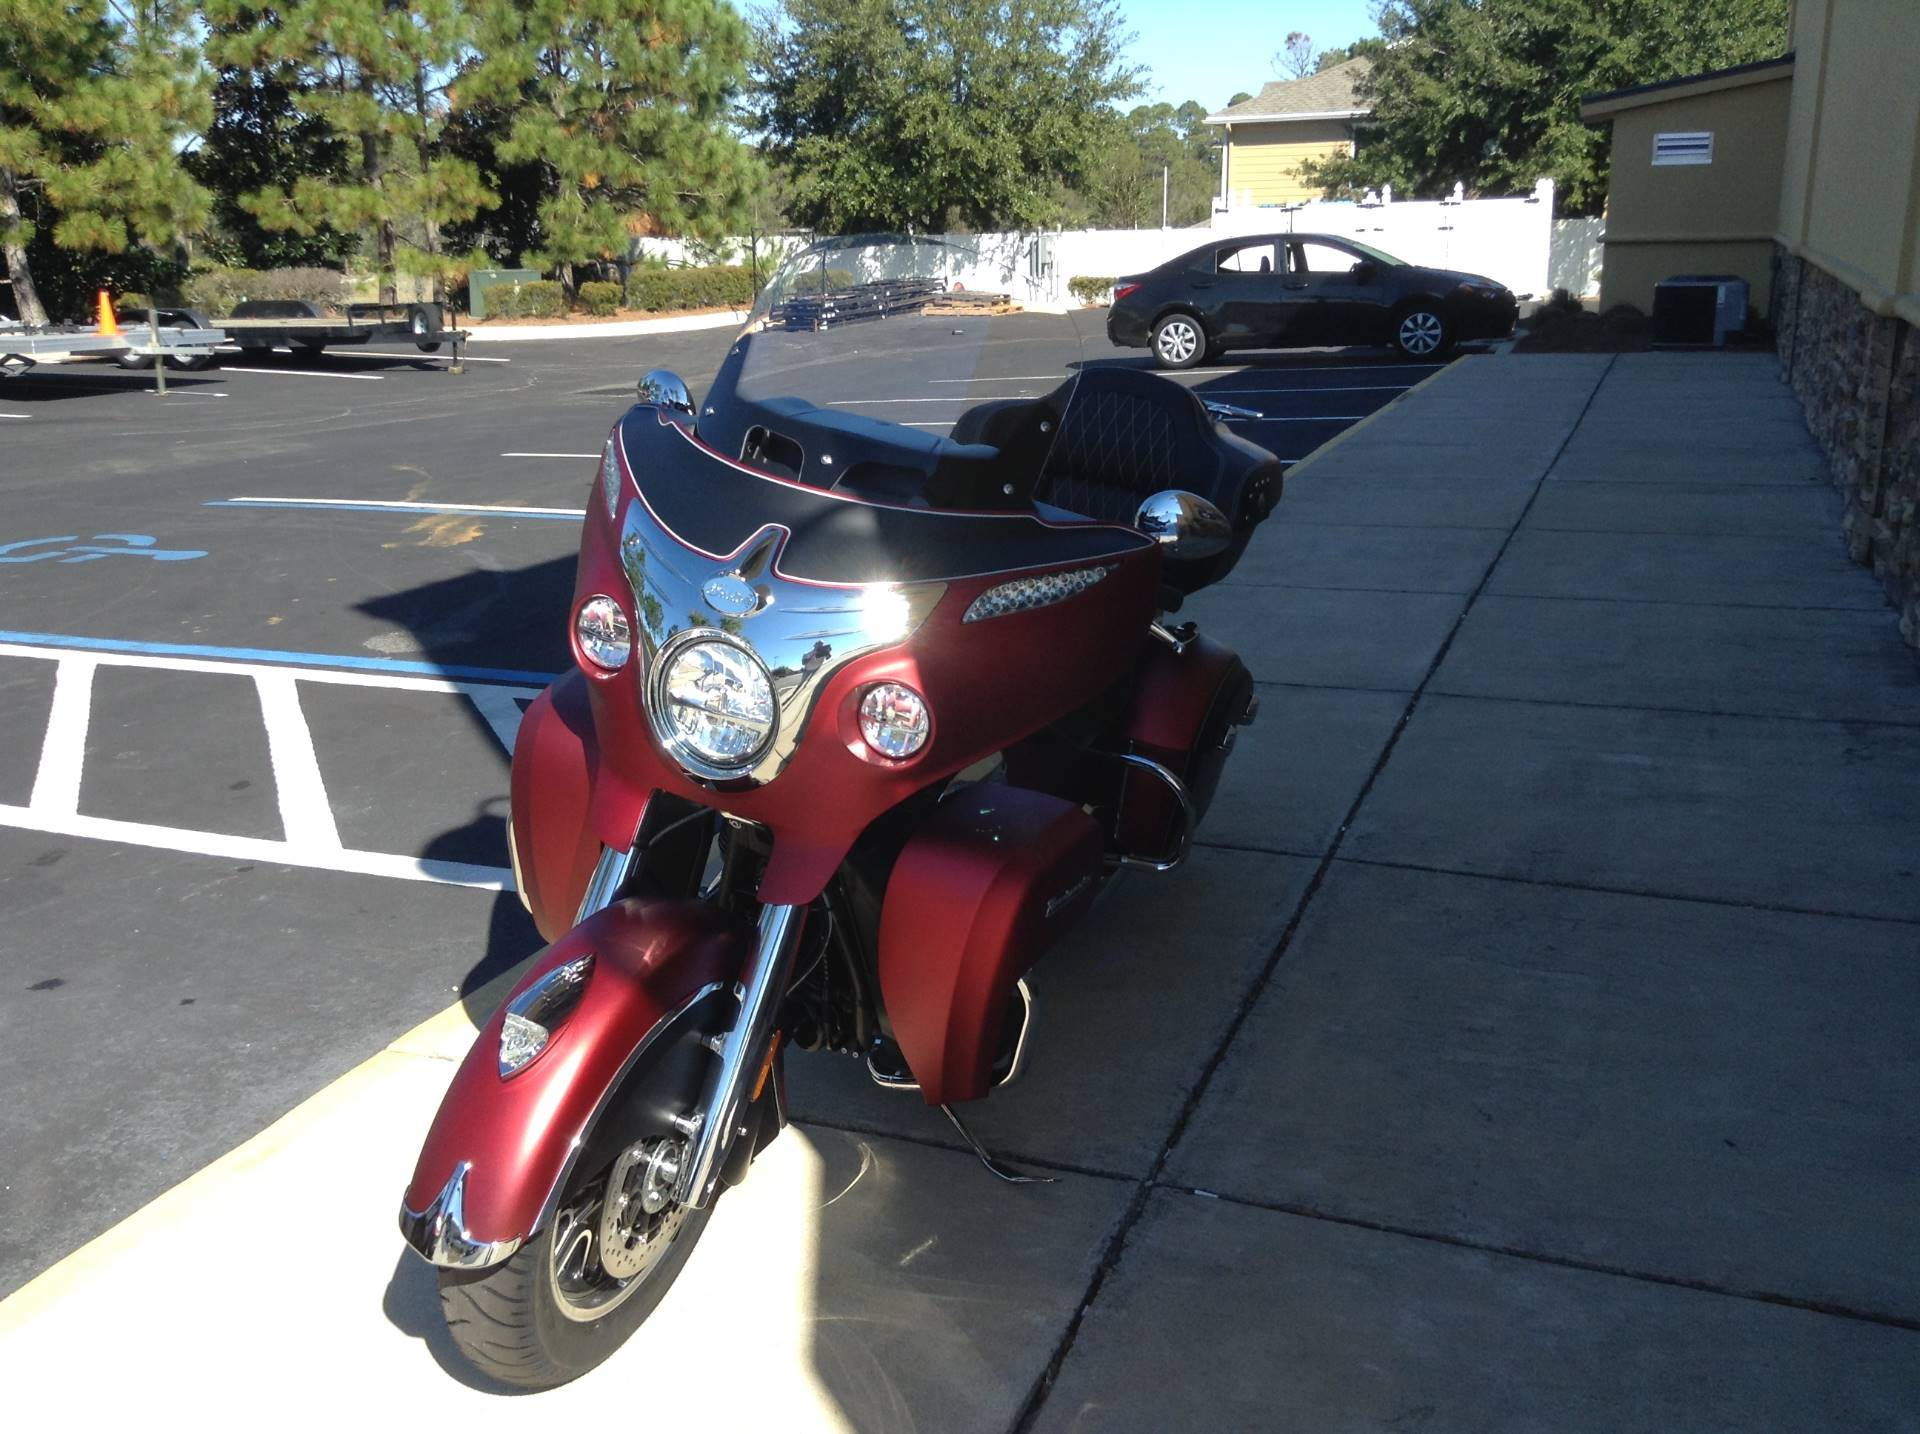 2018 Indian ICON ROAD MASTER in Panama City Beach, Florida